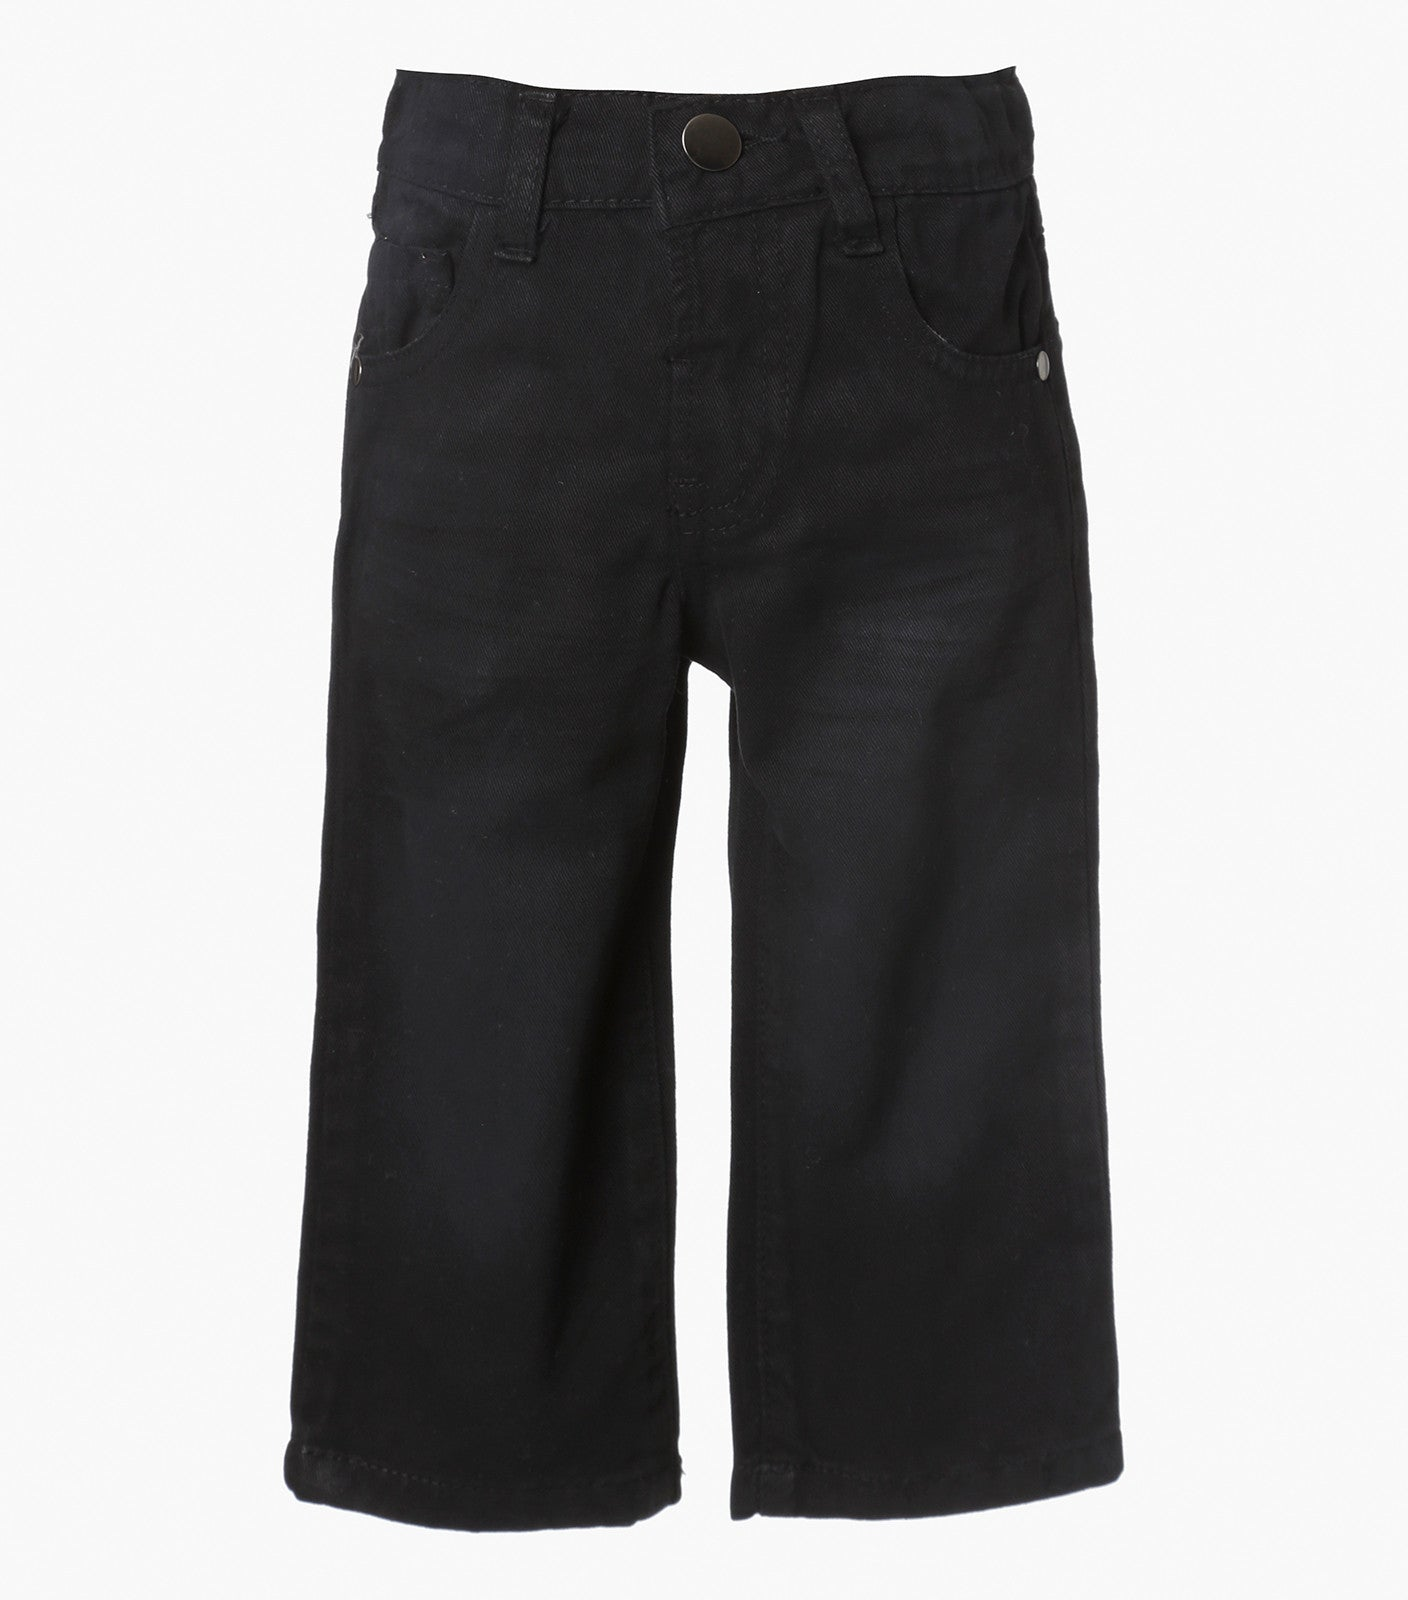 Baby Boy Stylish Black Jeans